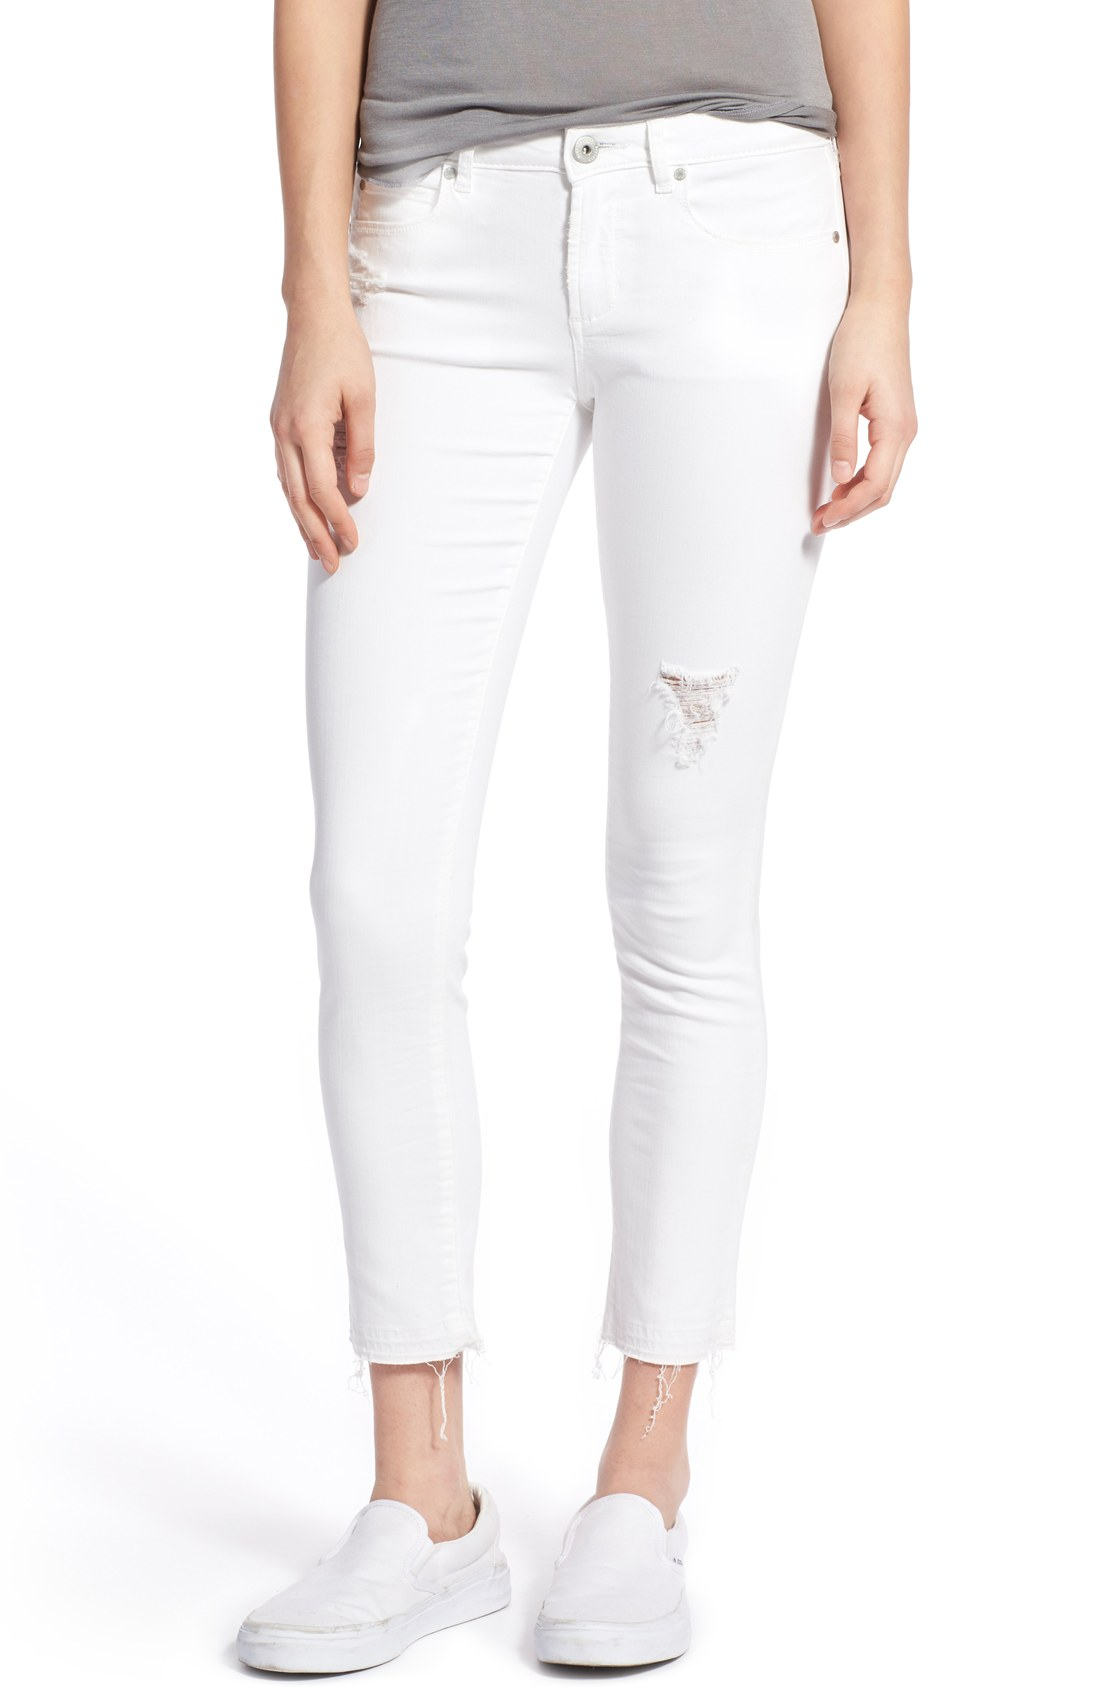 white jeans articles of society u0027carlyu0027 frayed hem crop skinny jeans (worn white) |  nordstrom JVKRPAJ